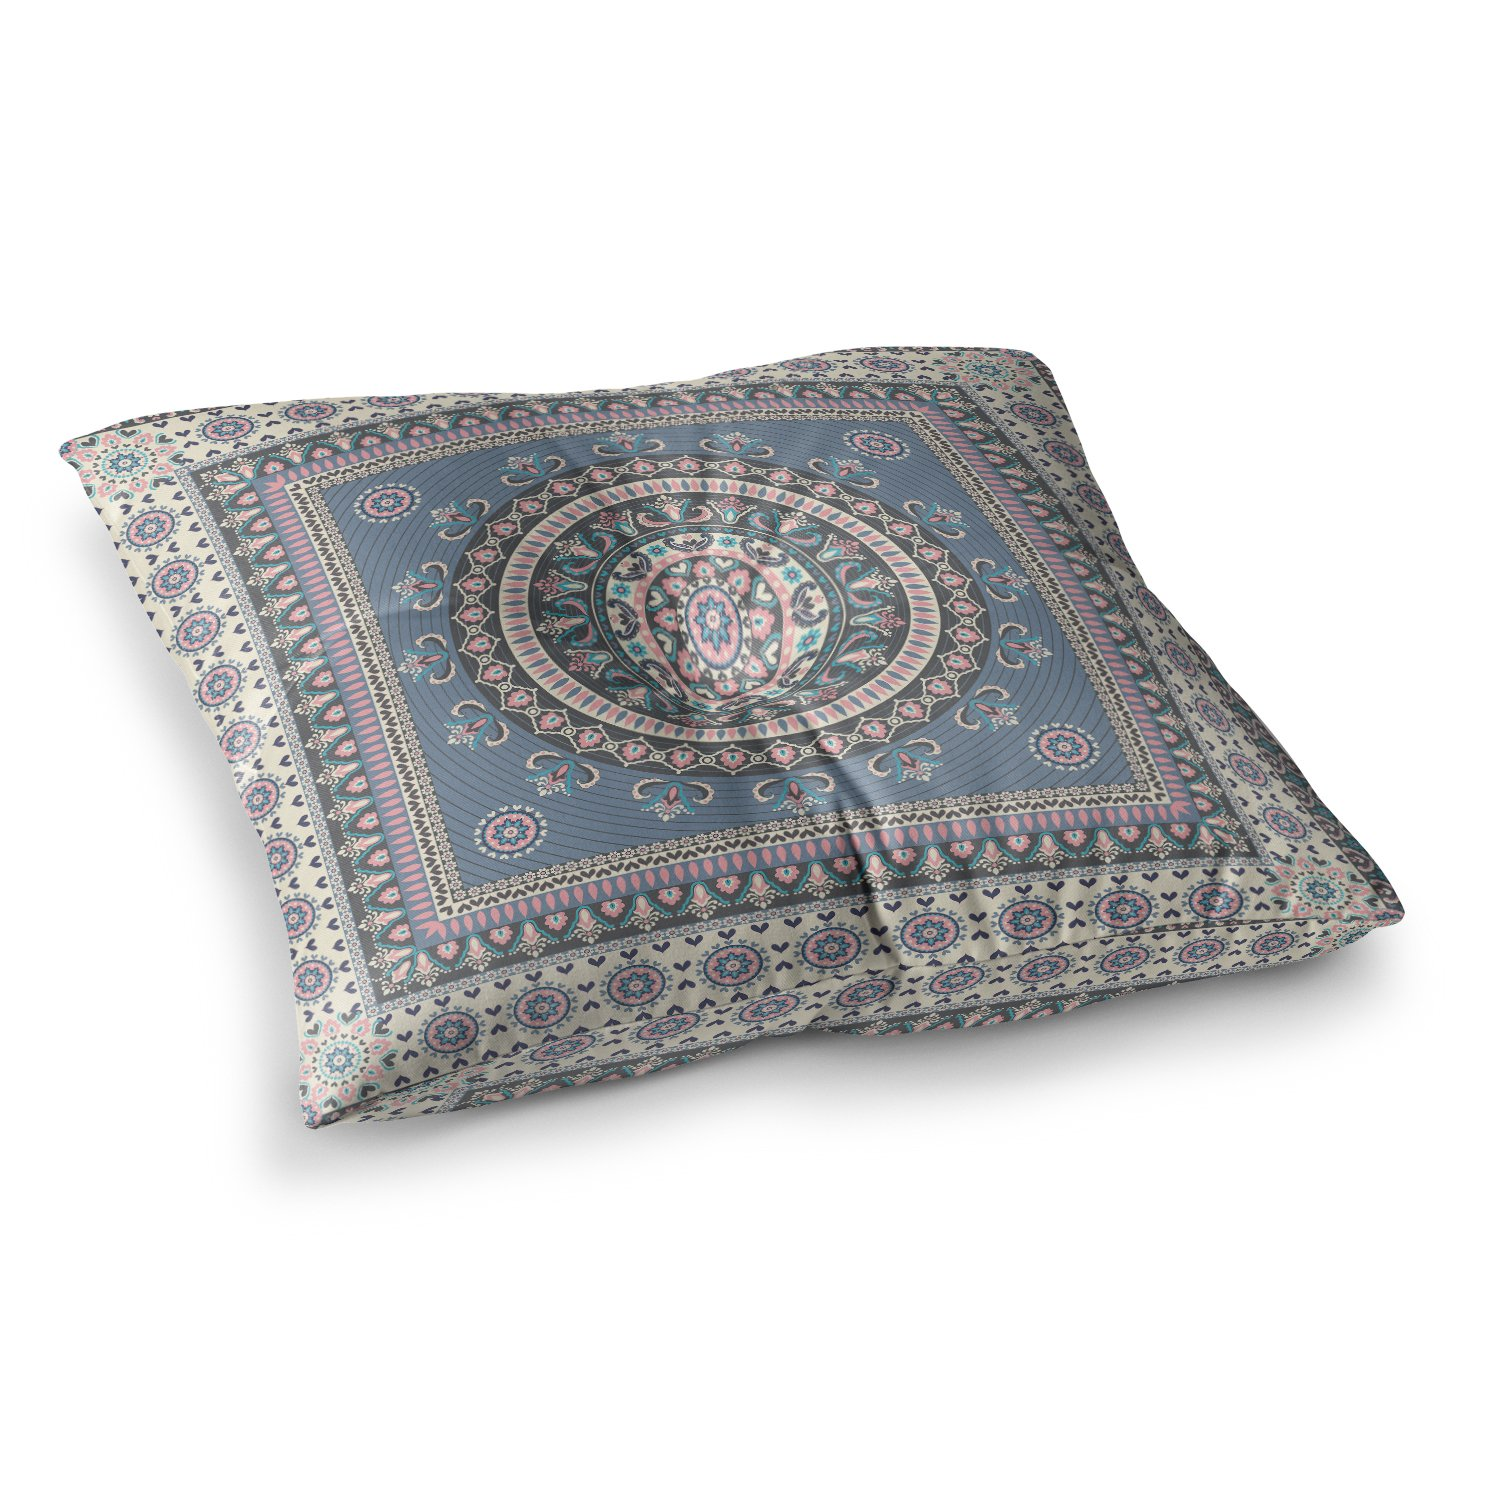 Kess InHouse Nandita Singh Chakra Blue Purple Digital, 26' x 26' Square Floor Pillow